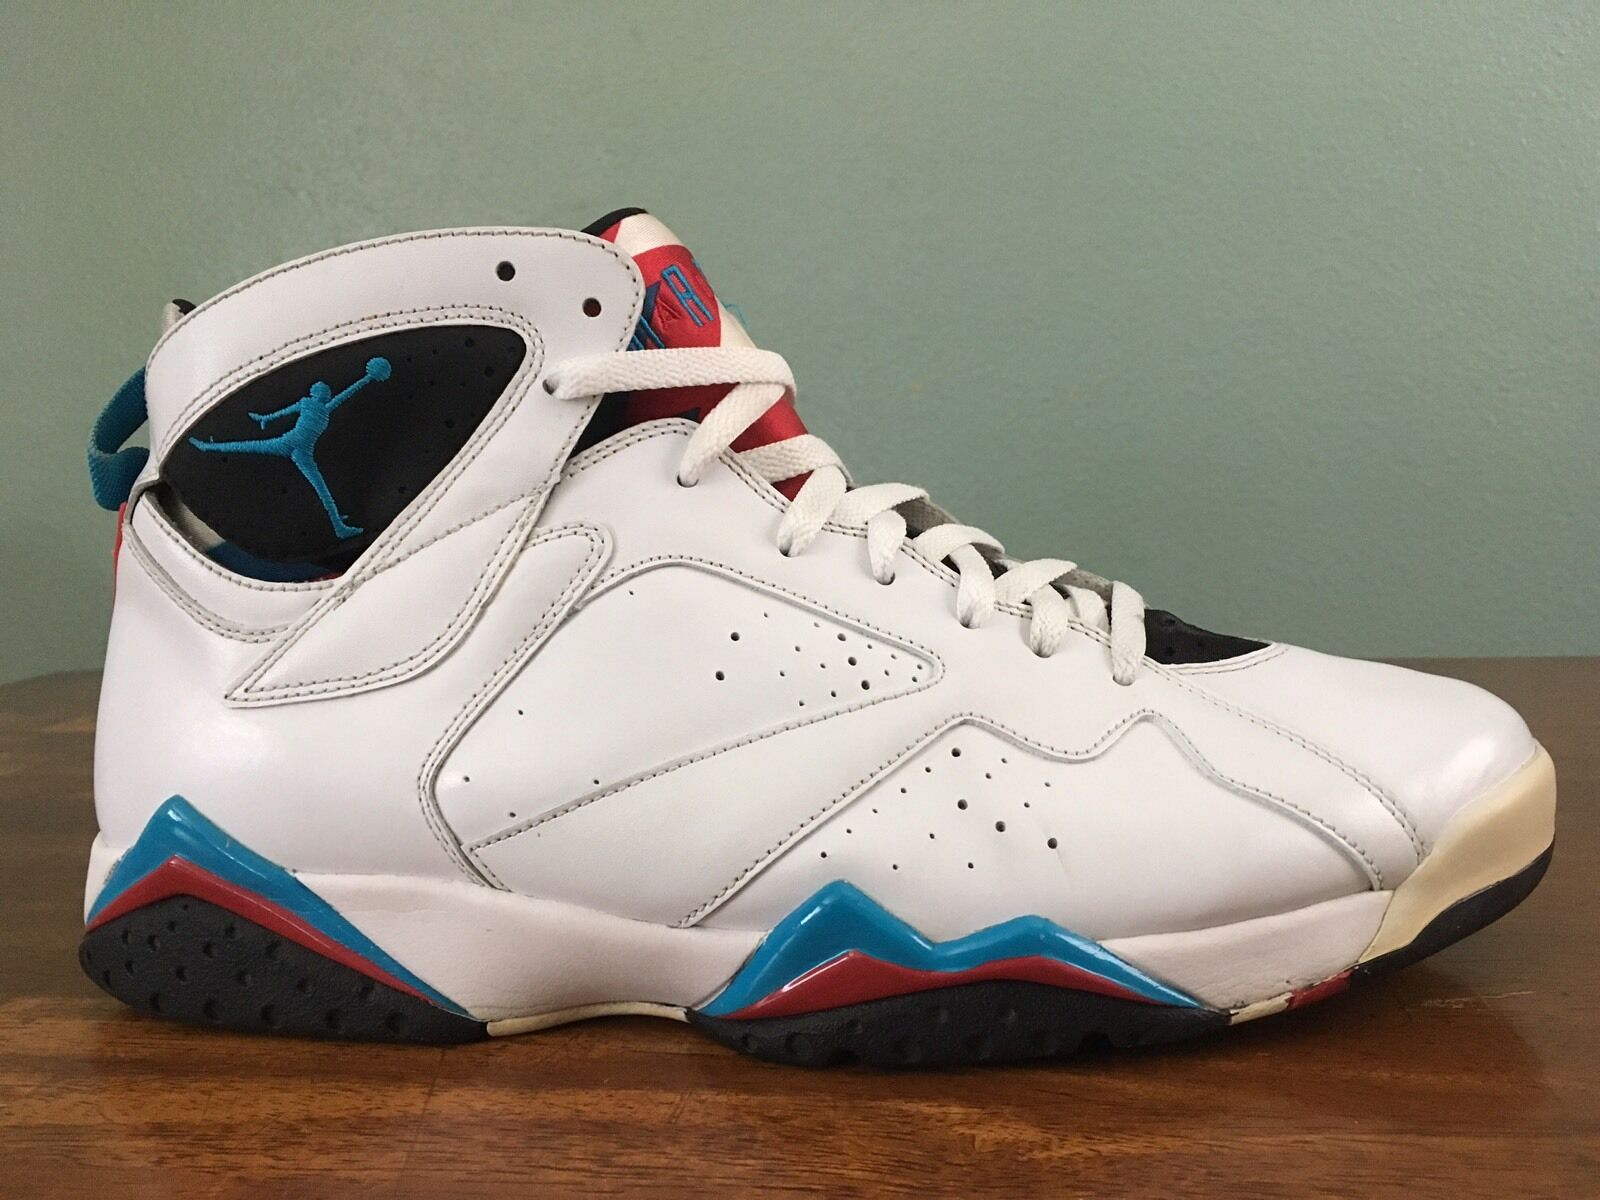 2010 Nike Air Jordan VII Orion Men's Size 13